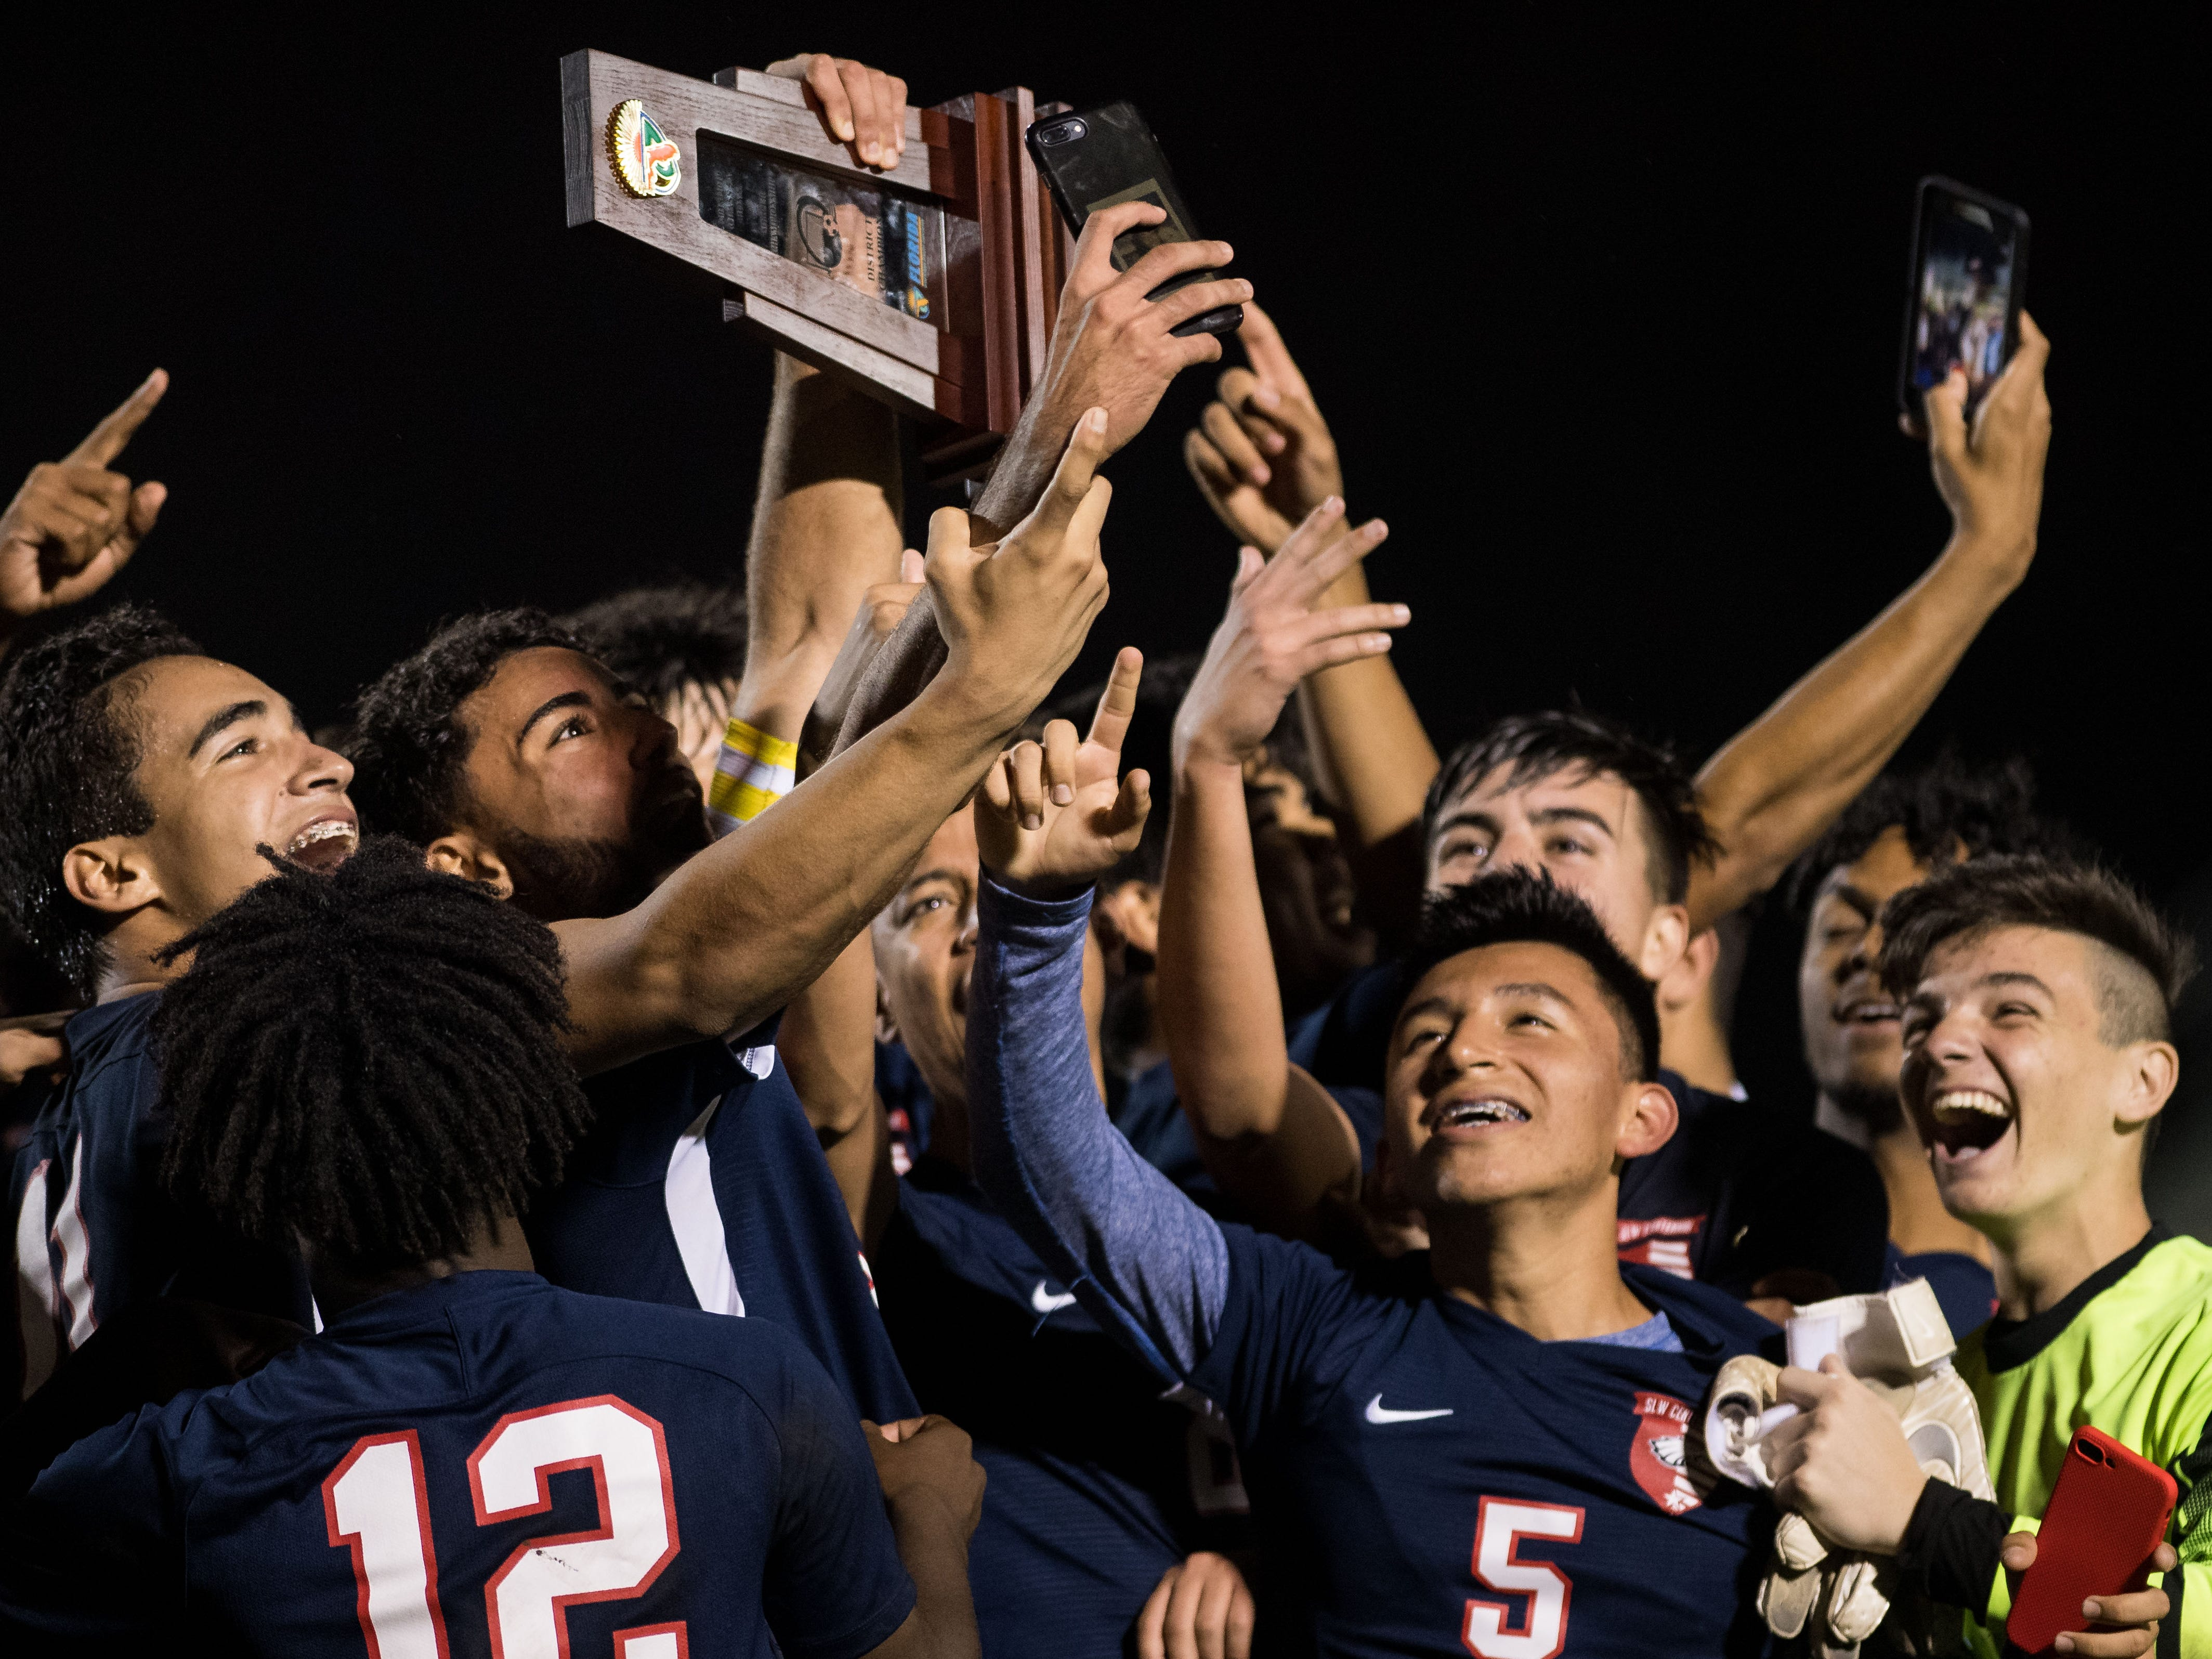 The St. Lucie West Centennial High School varsity boys soccer team celebrates their 3-2 win over Jupiter for the District 10-5A championship title Friday, Feb. 1, 2019, at South County Regional Stadium in Port St. Lucie.